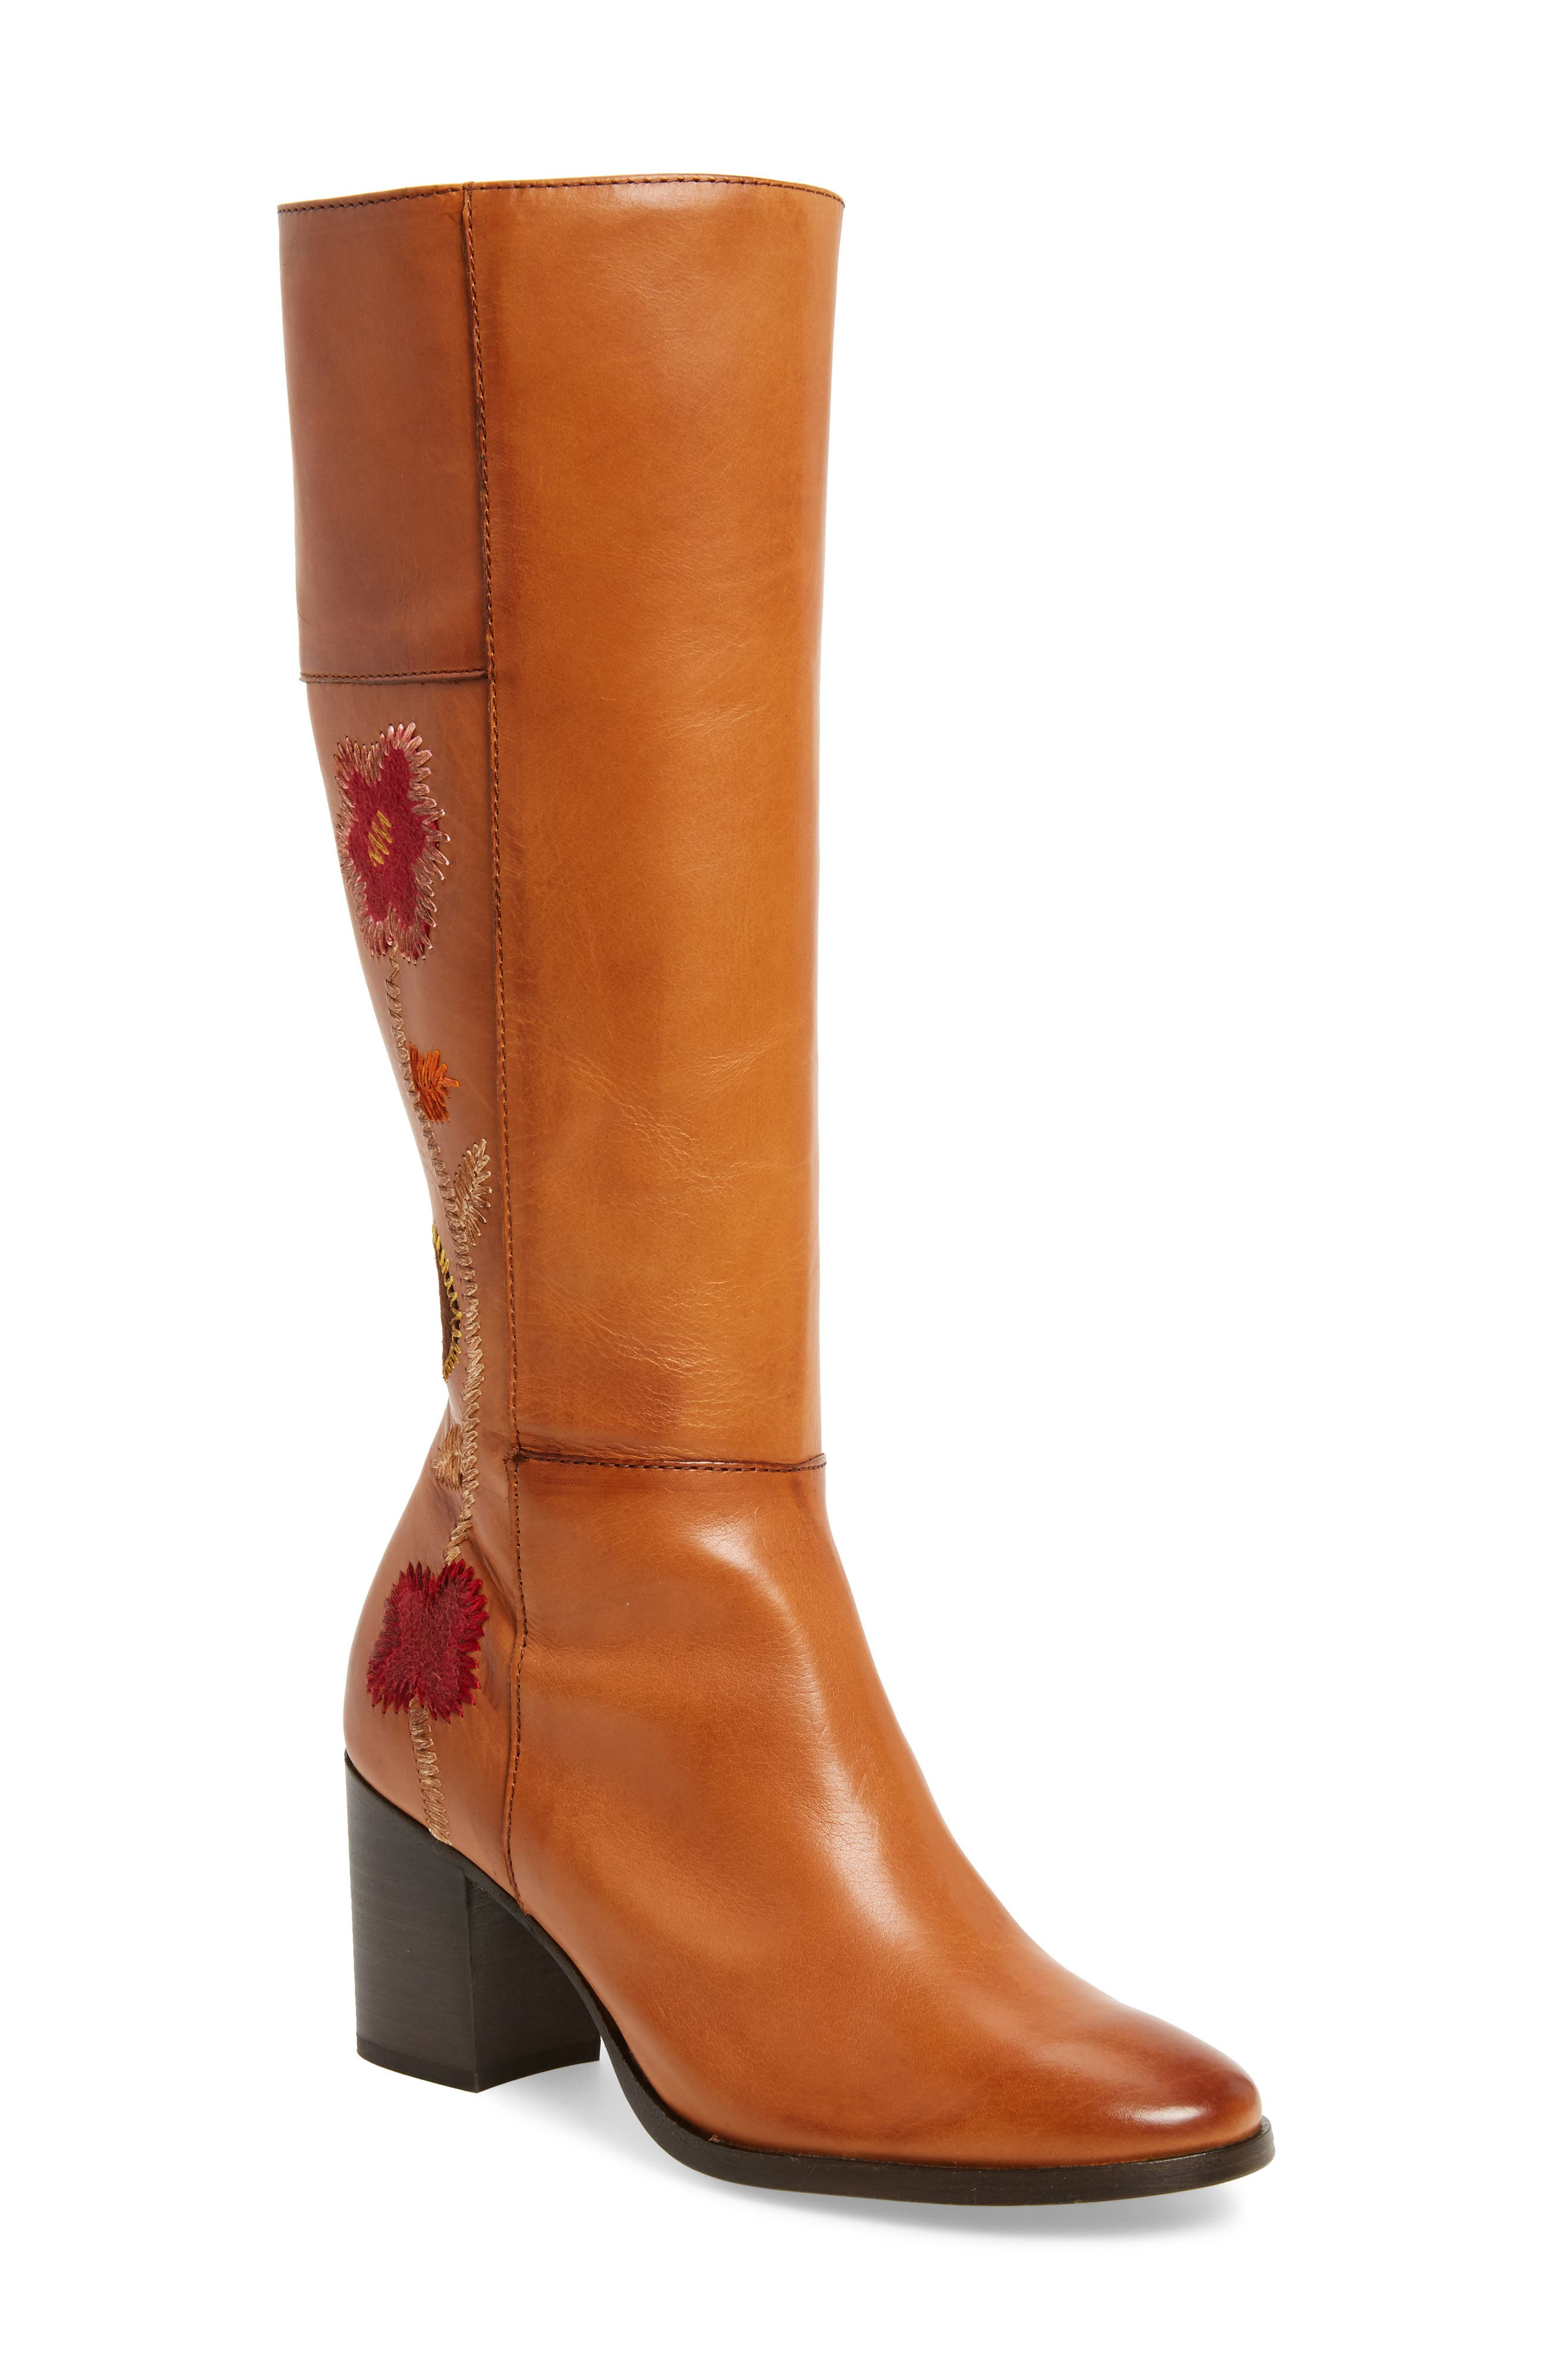 Nova Floral Embroidered Knee High Boot,                             Main thumbnail 1, color,                             Cognac Fabric